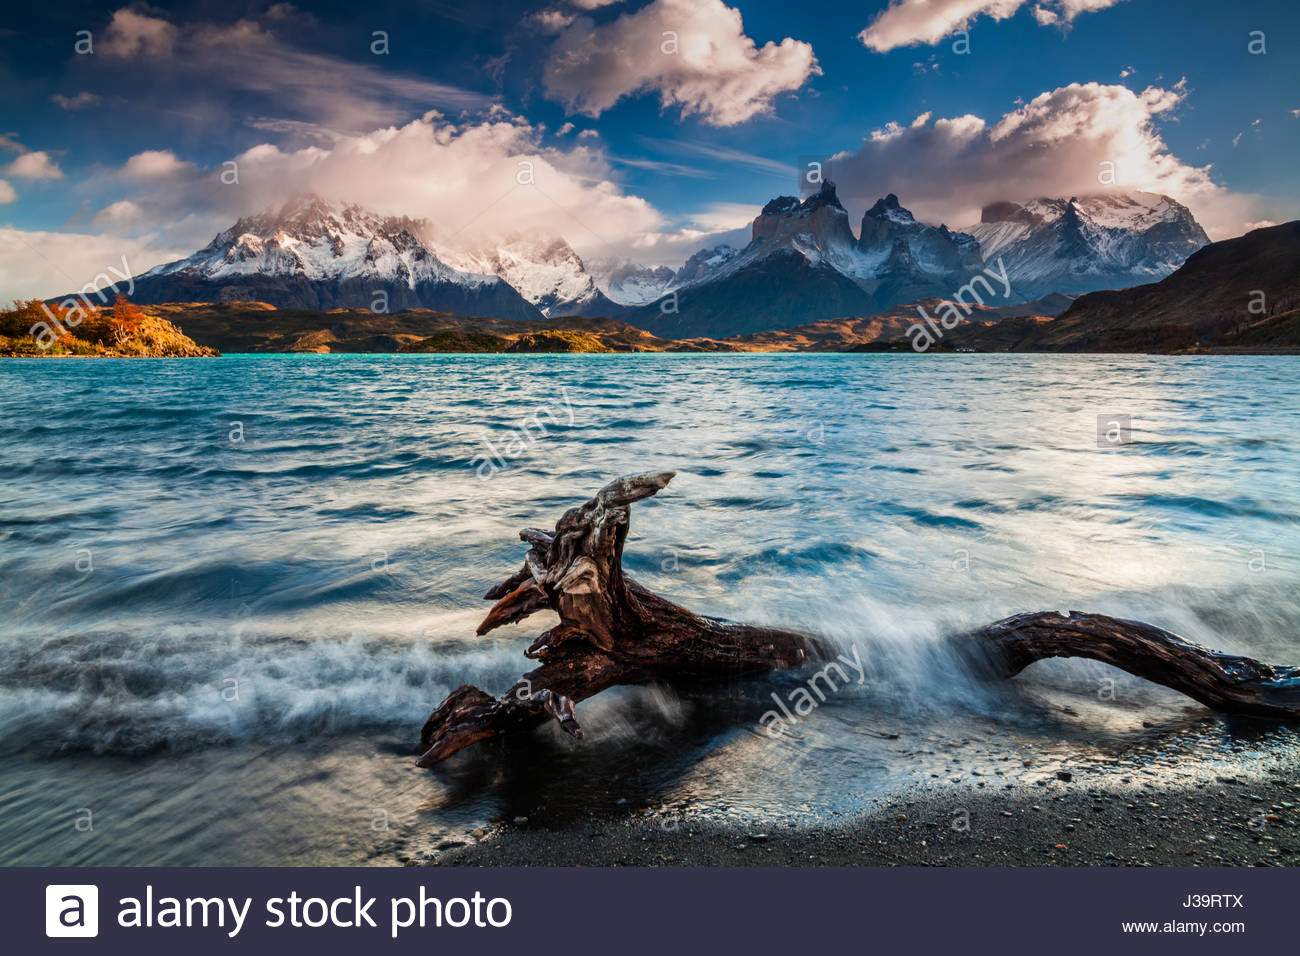 Dramatic dawn in Torres del Paine, Chile - Stock Image